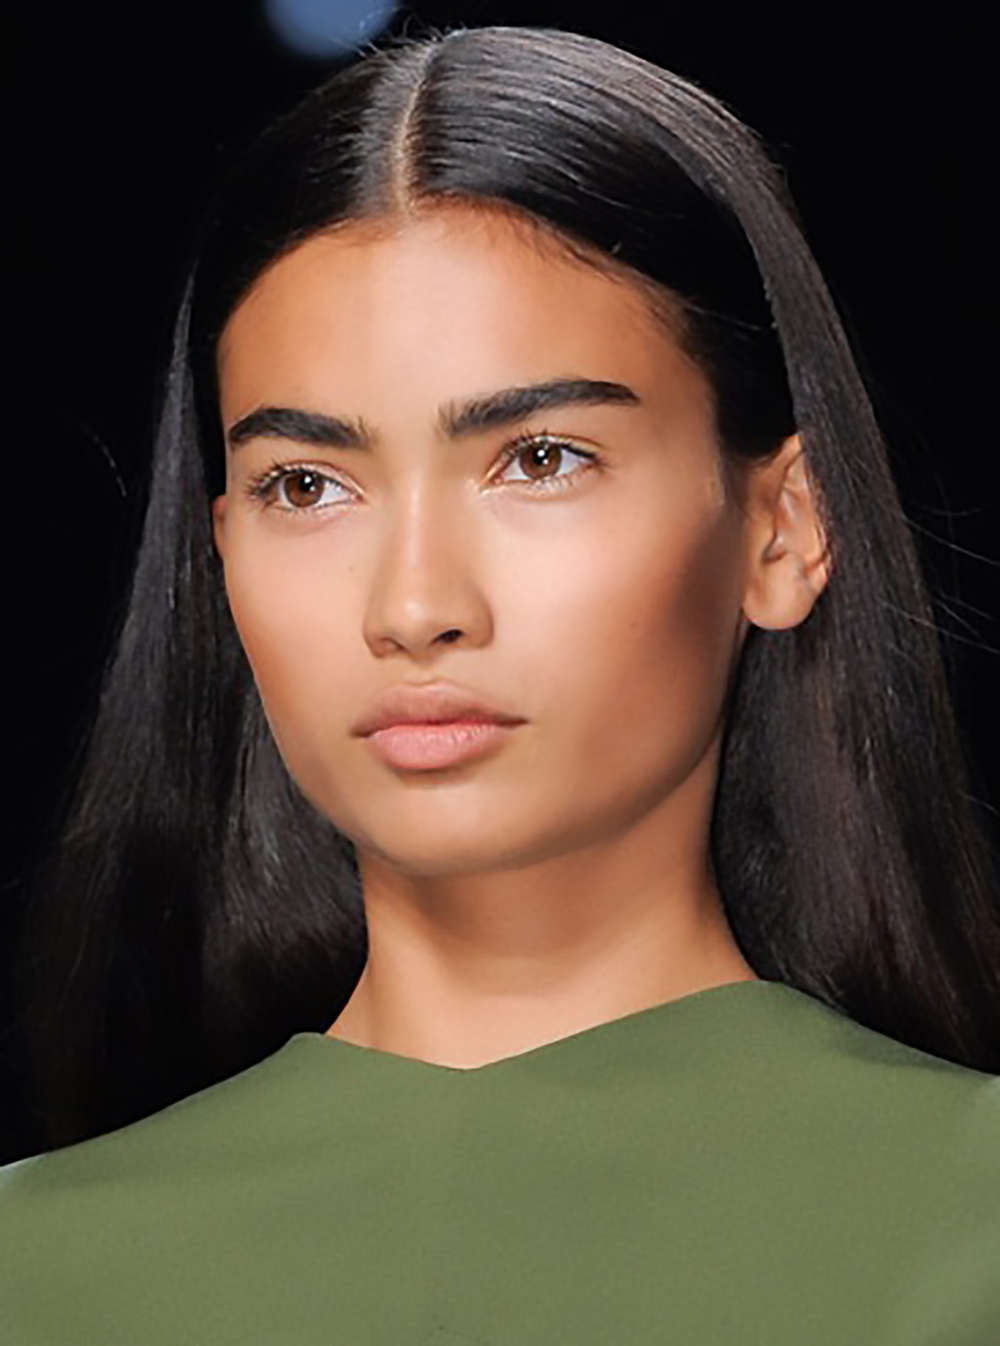 elle.com spring 2013 make up trend bold brow 1500.jpg